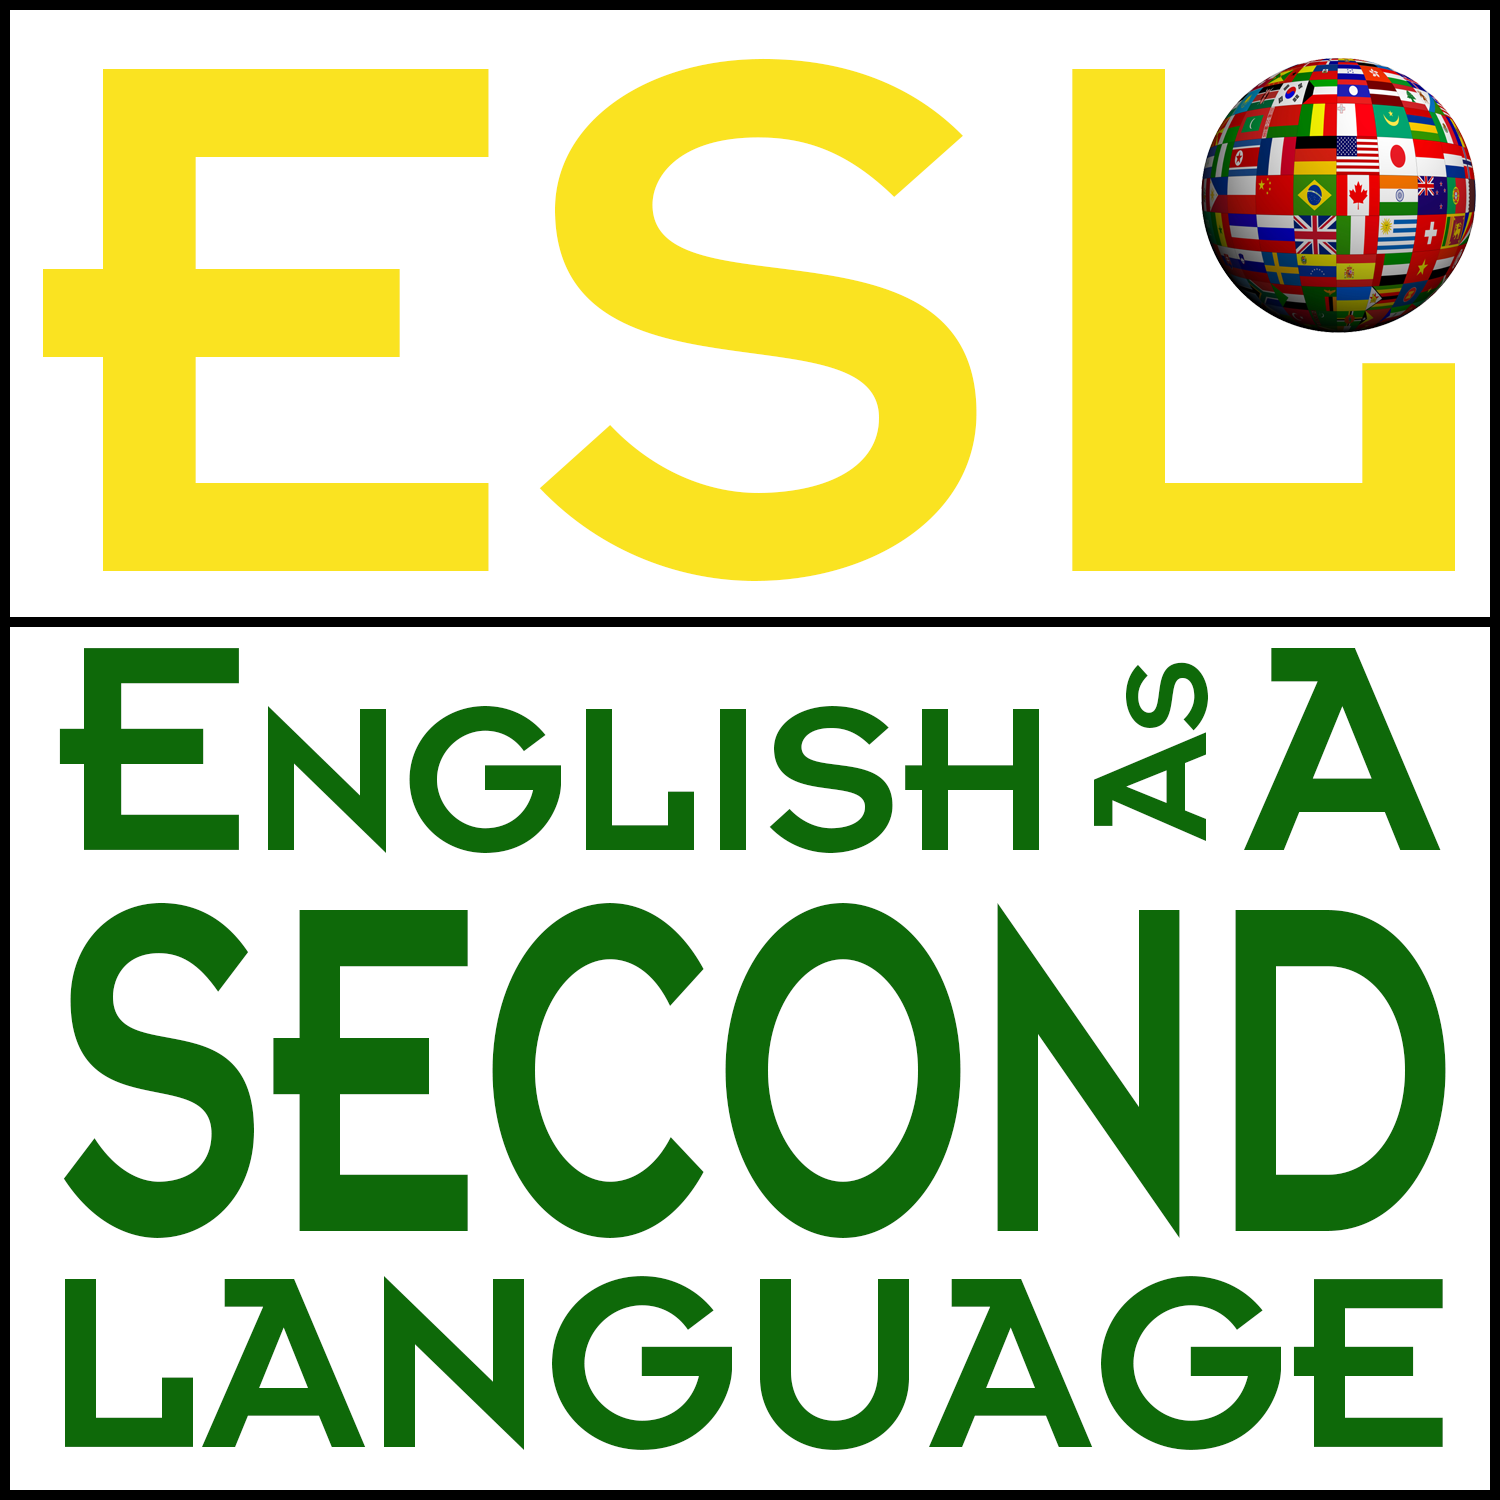 English as a Second Language (ESL) Course - bwhresearch.org